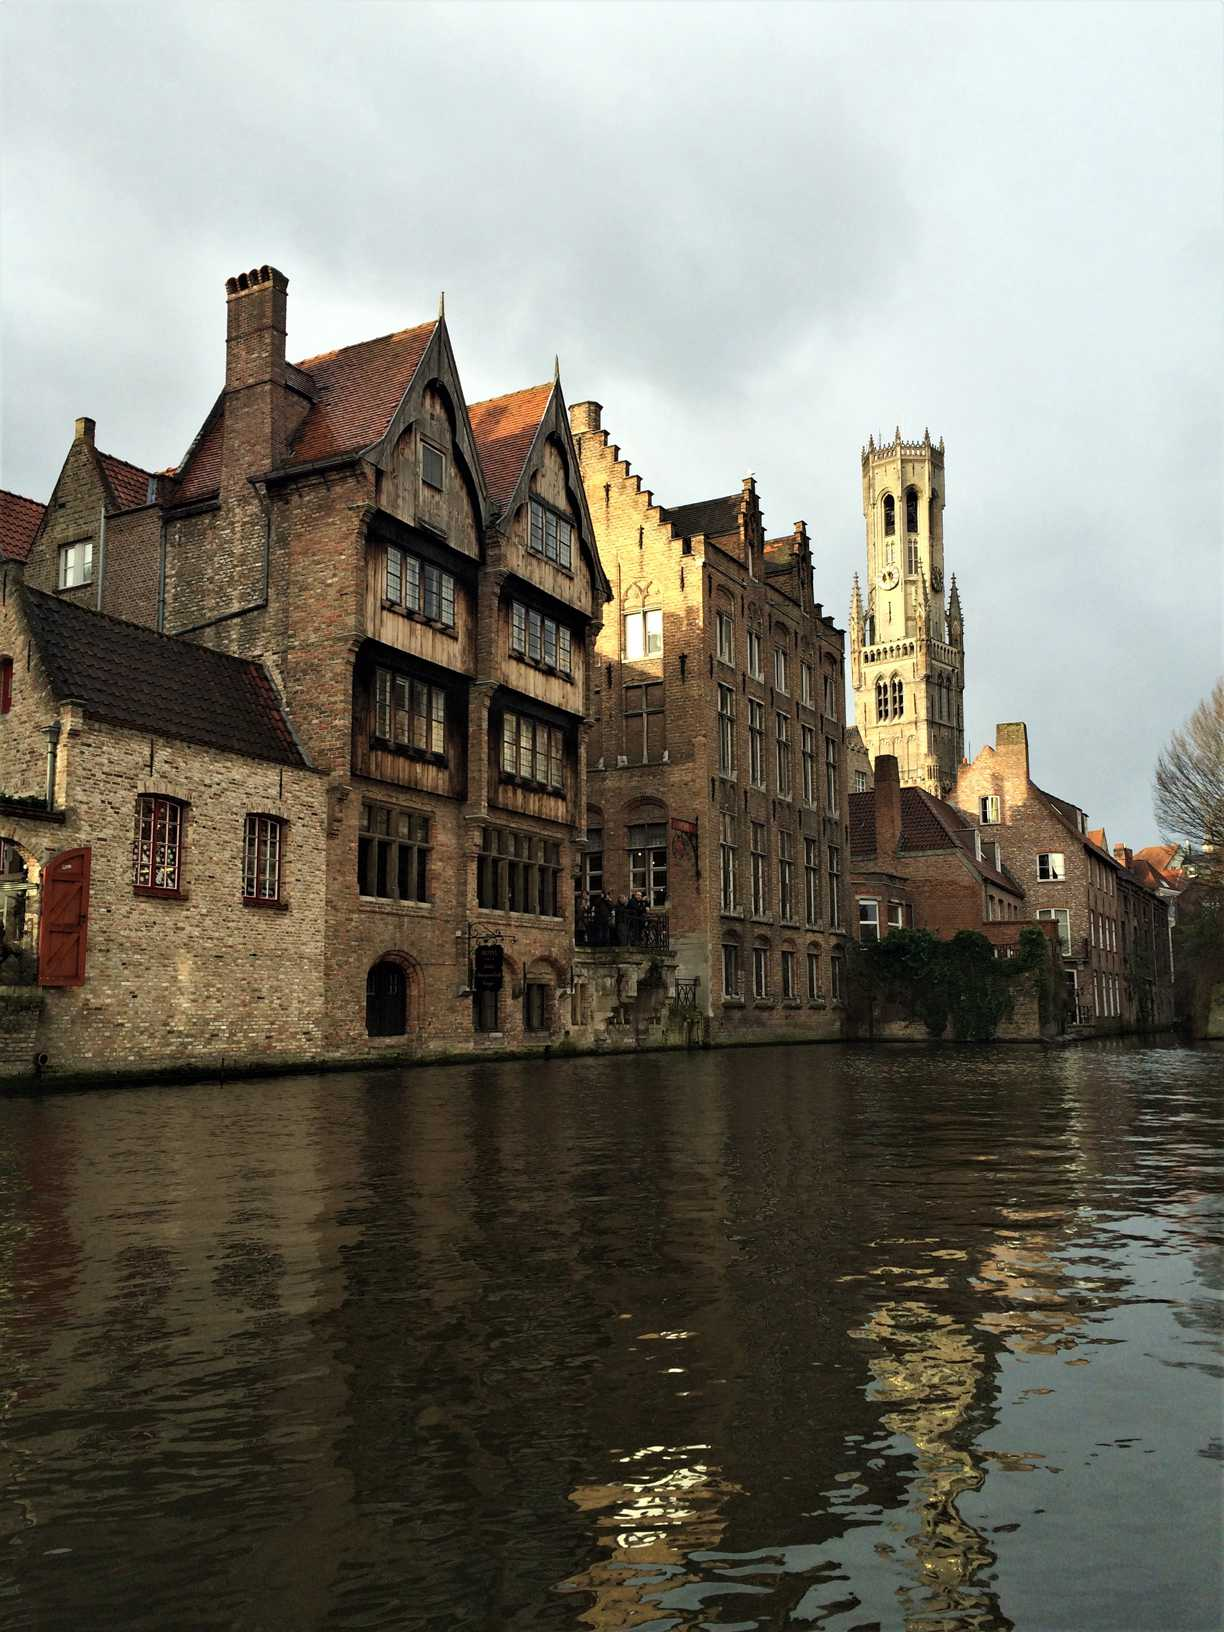 A picture of the oldest wooden buildings in Bruges, Belgium as seen from a boat on the canal.